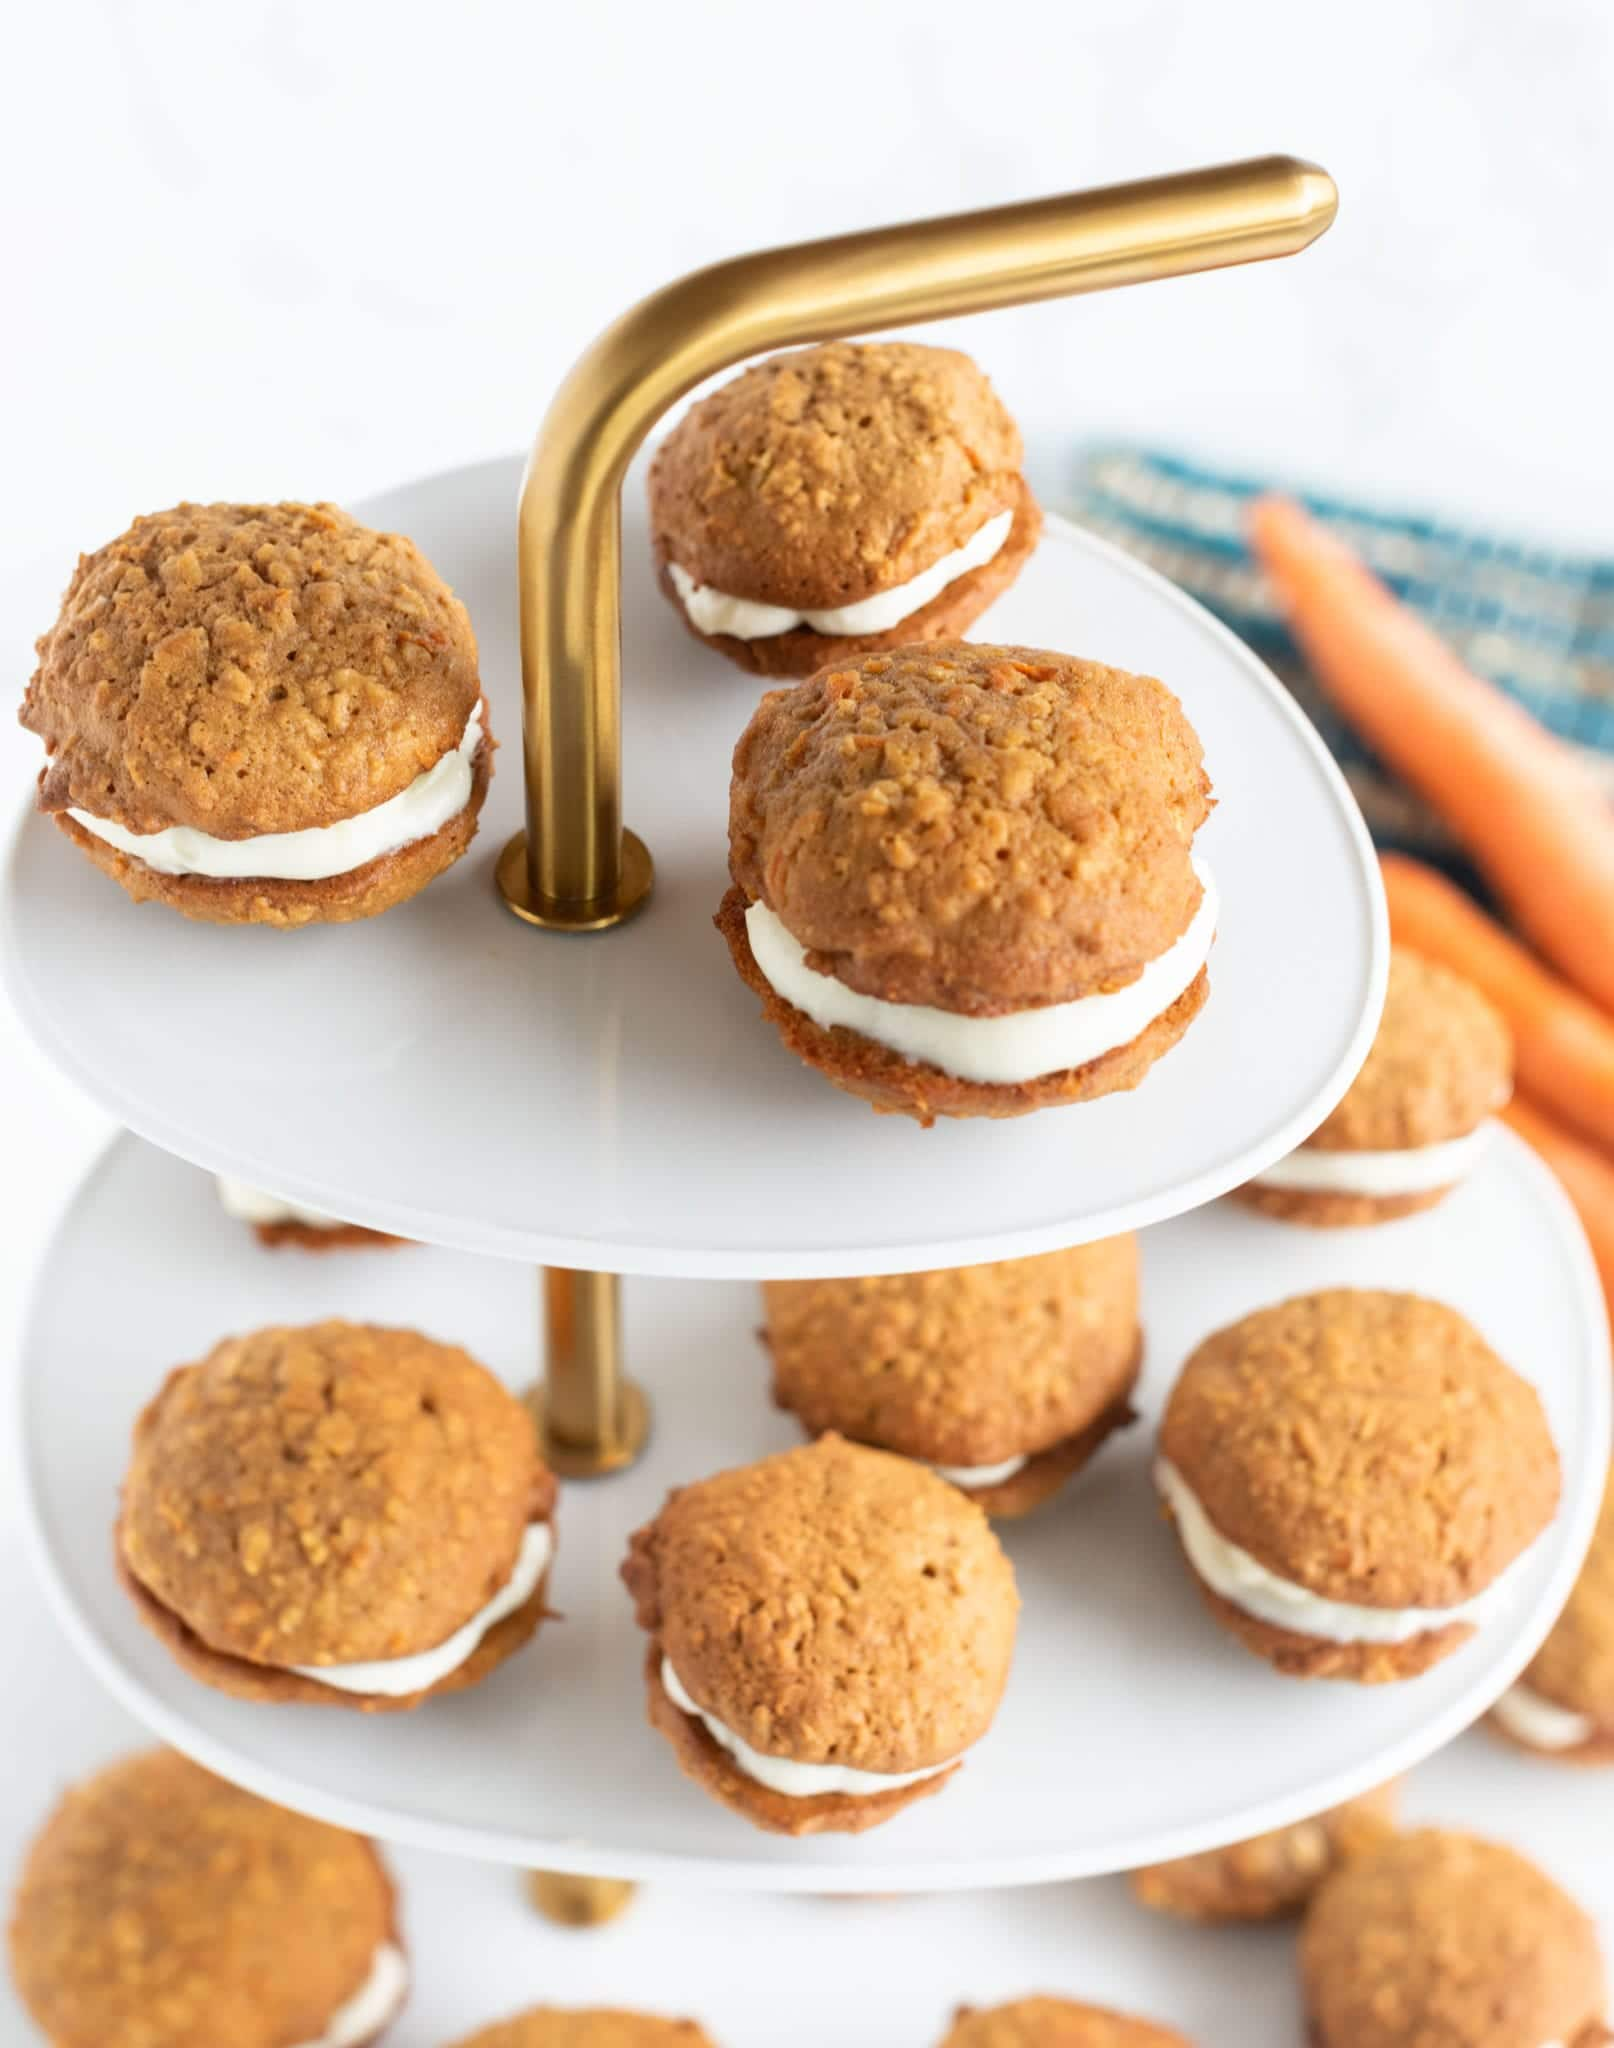 Up close shot of finished cookie sandwiches on white and gold tiered display